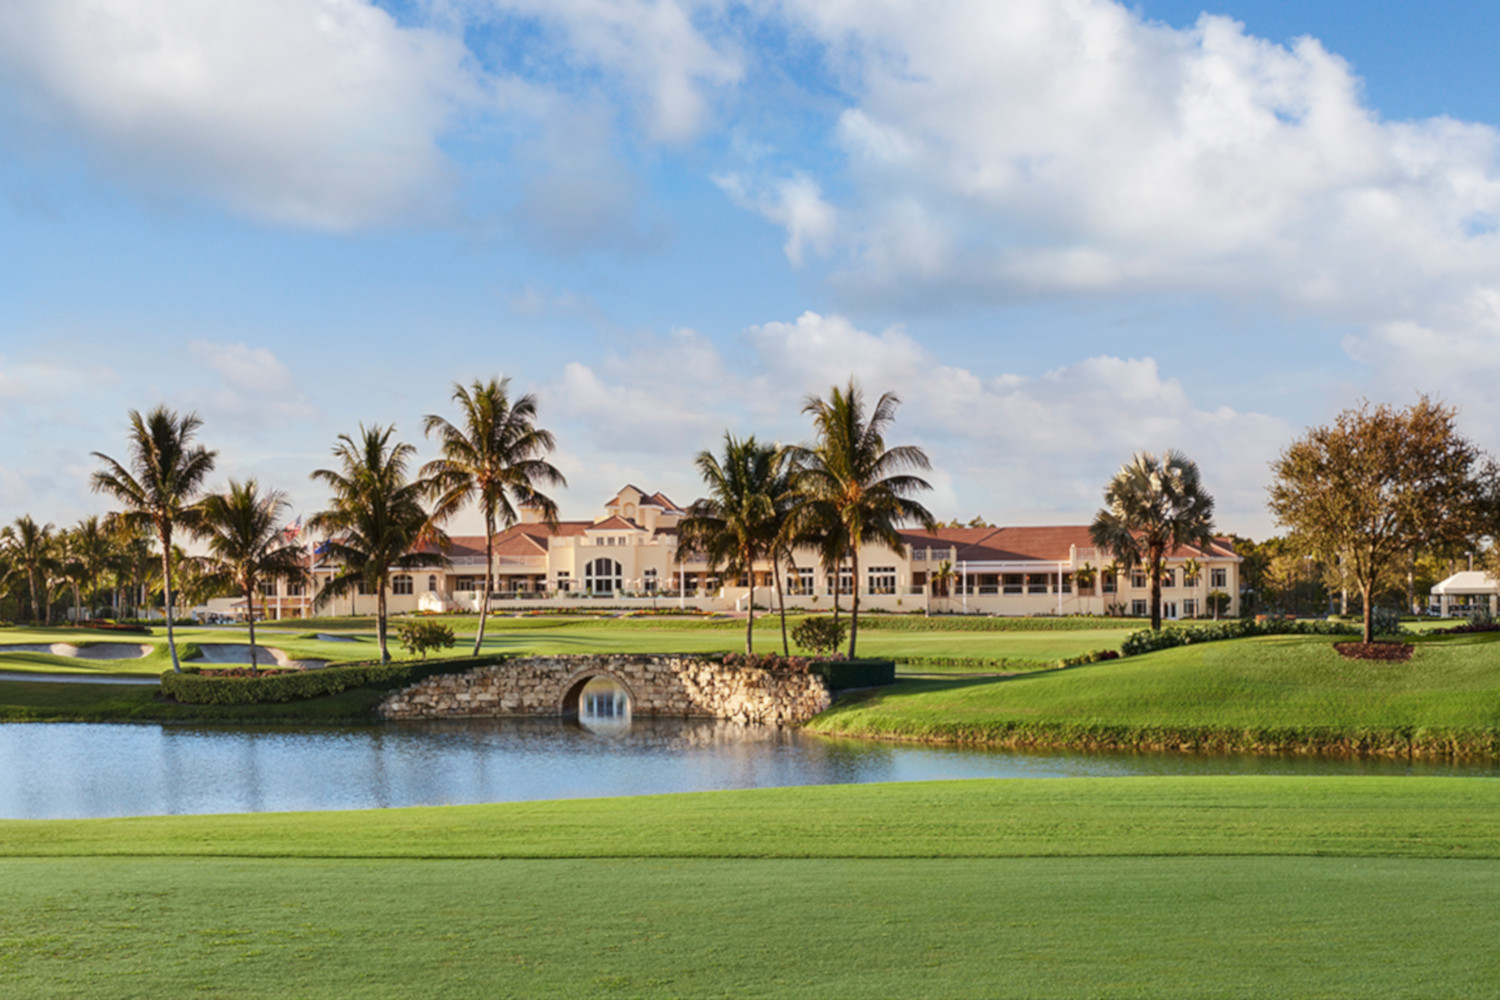 2018 BallenIsles Junior Cup Showcases Golf's Next Generation